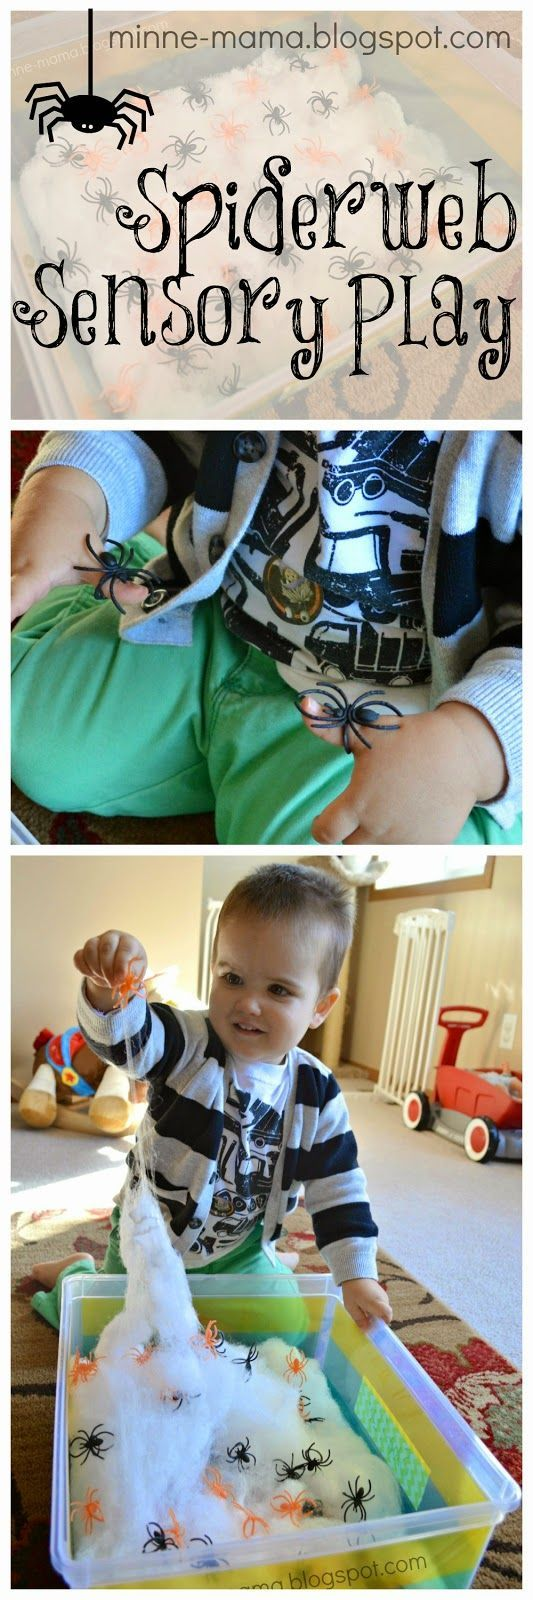 Minne-Mama: Spider Web Sensory Play